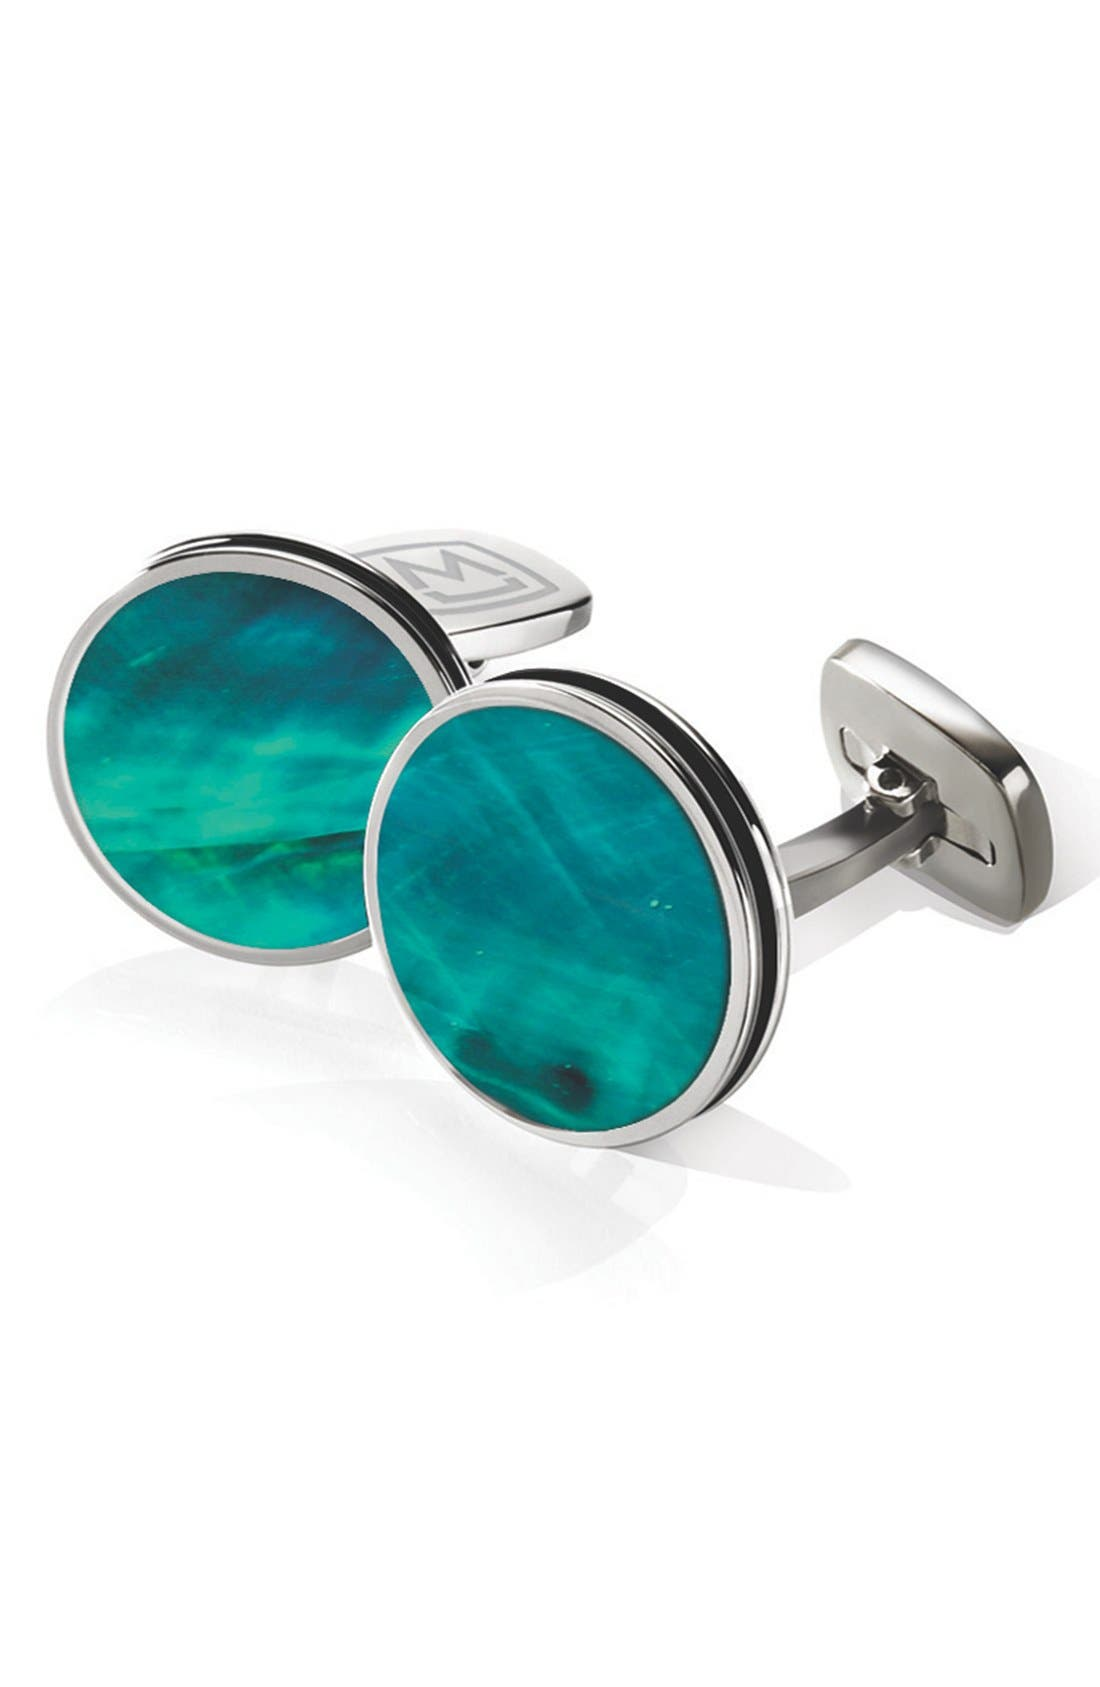 Stainless Steel Cuff Links,                         Main,                         color, Stainless Steel/ Teal